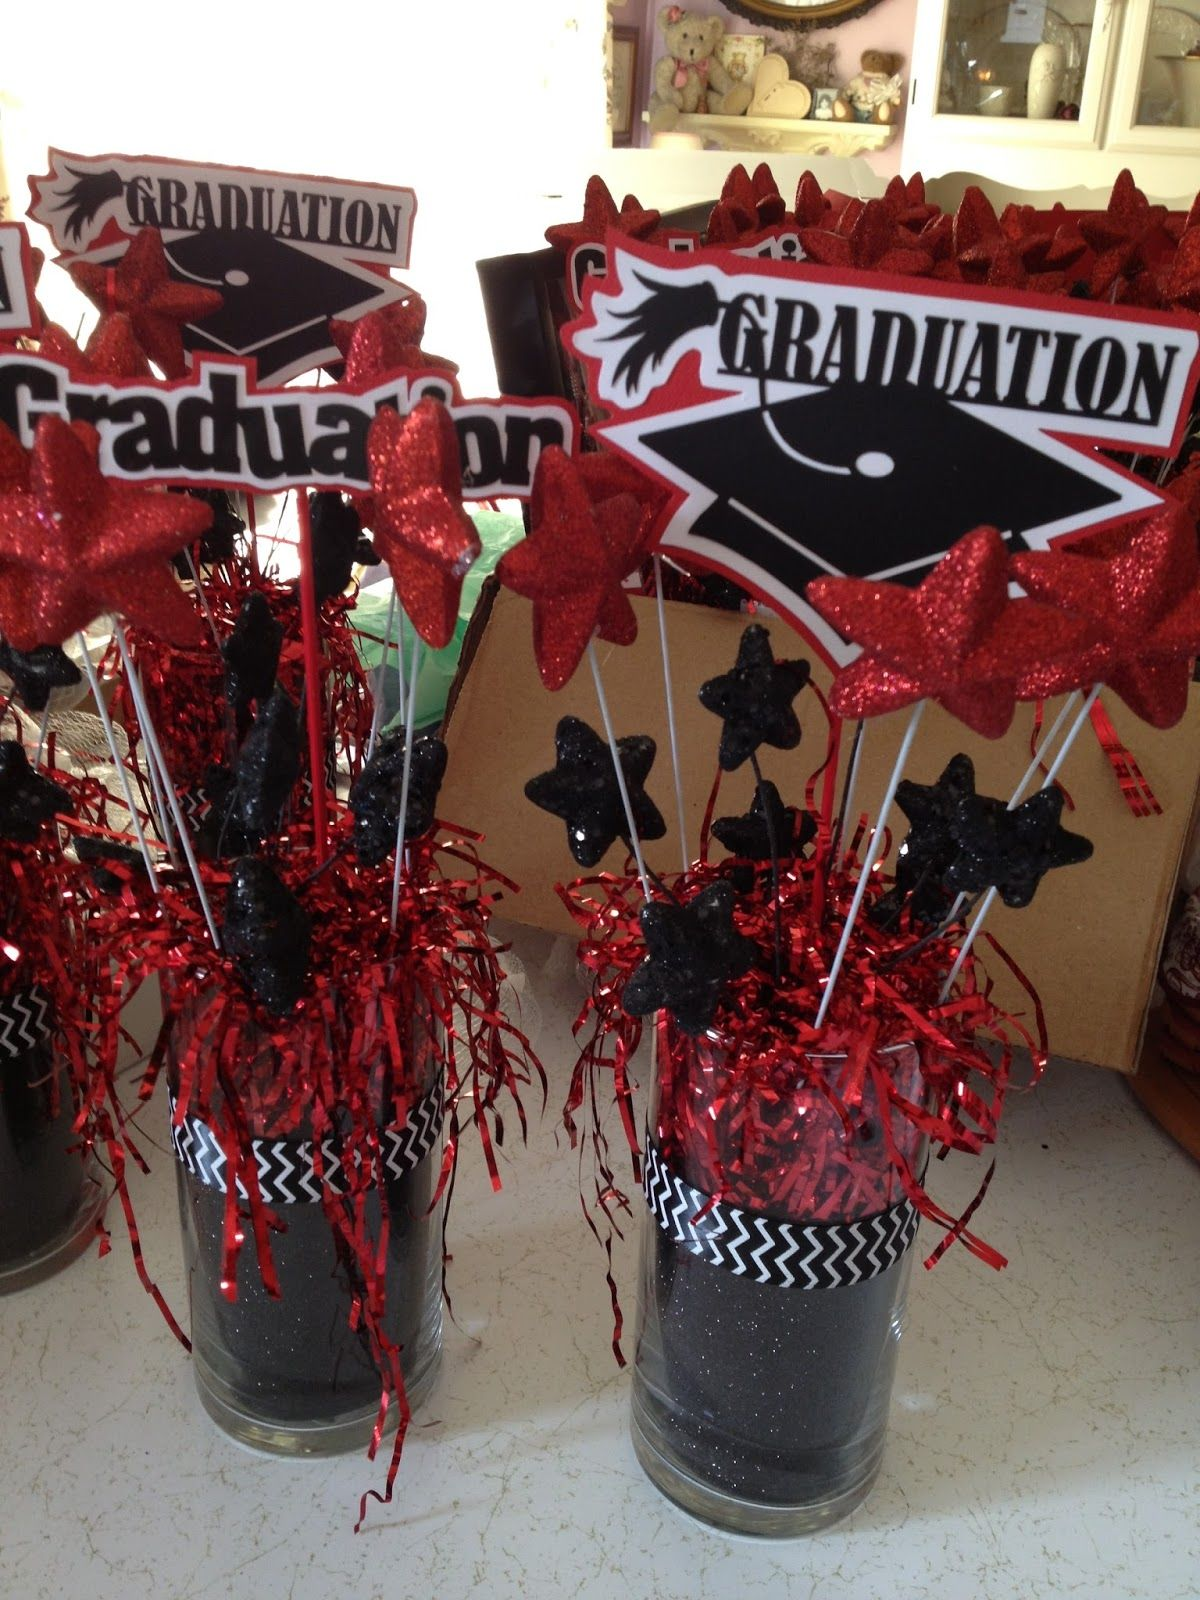 Graduation table decorations homemade - Graduation Centerpiece Ideas To Make Google Search